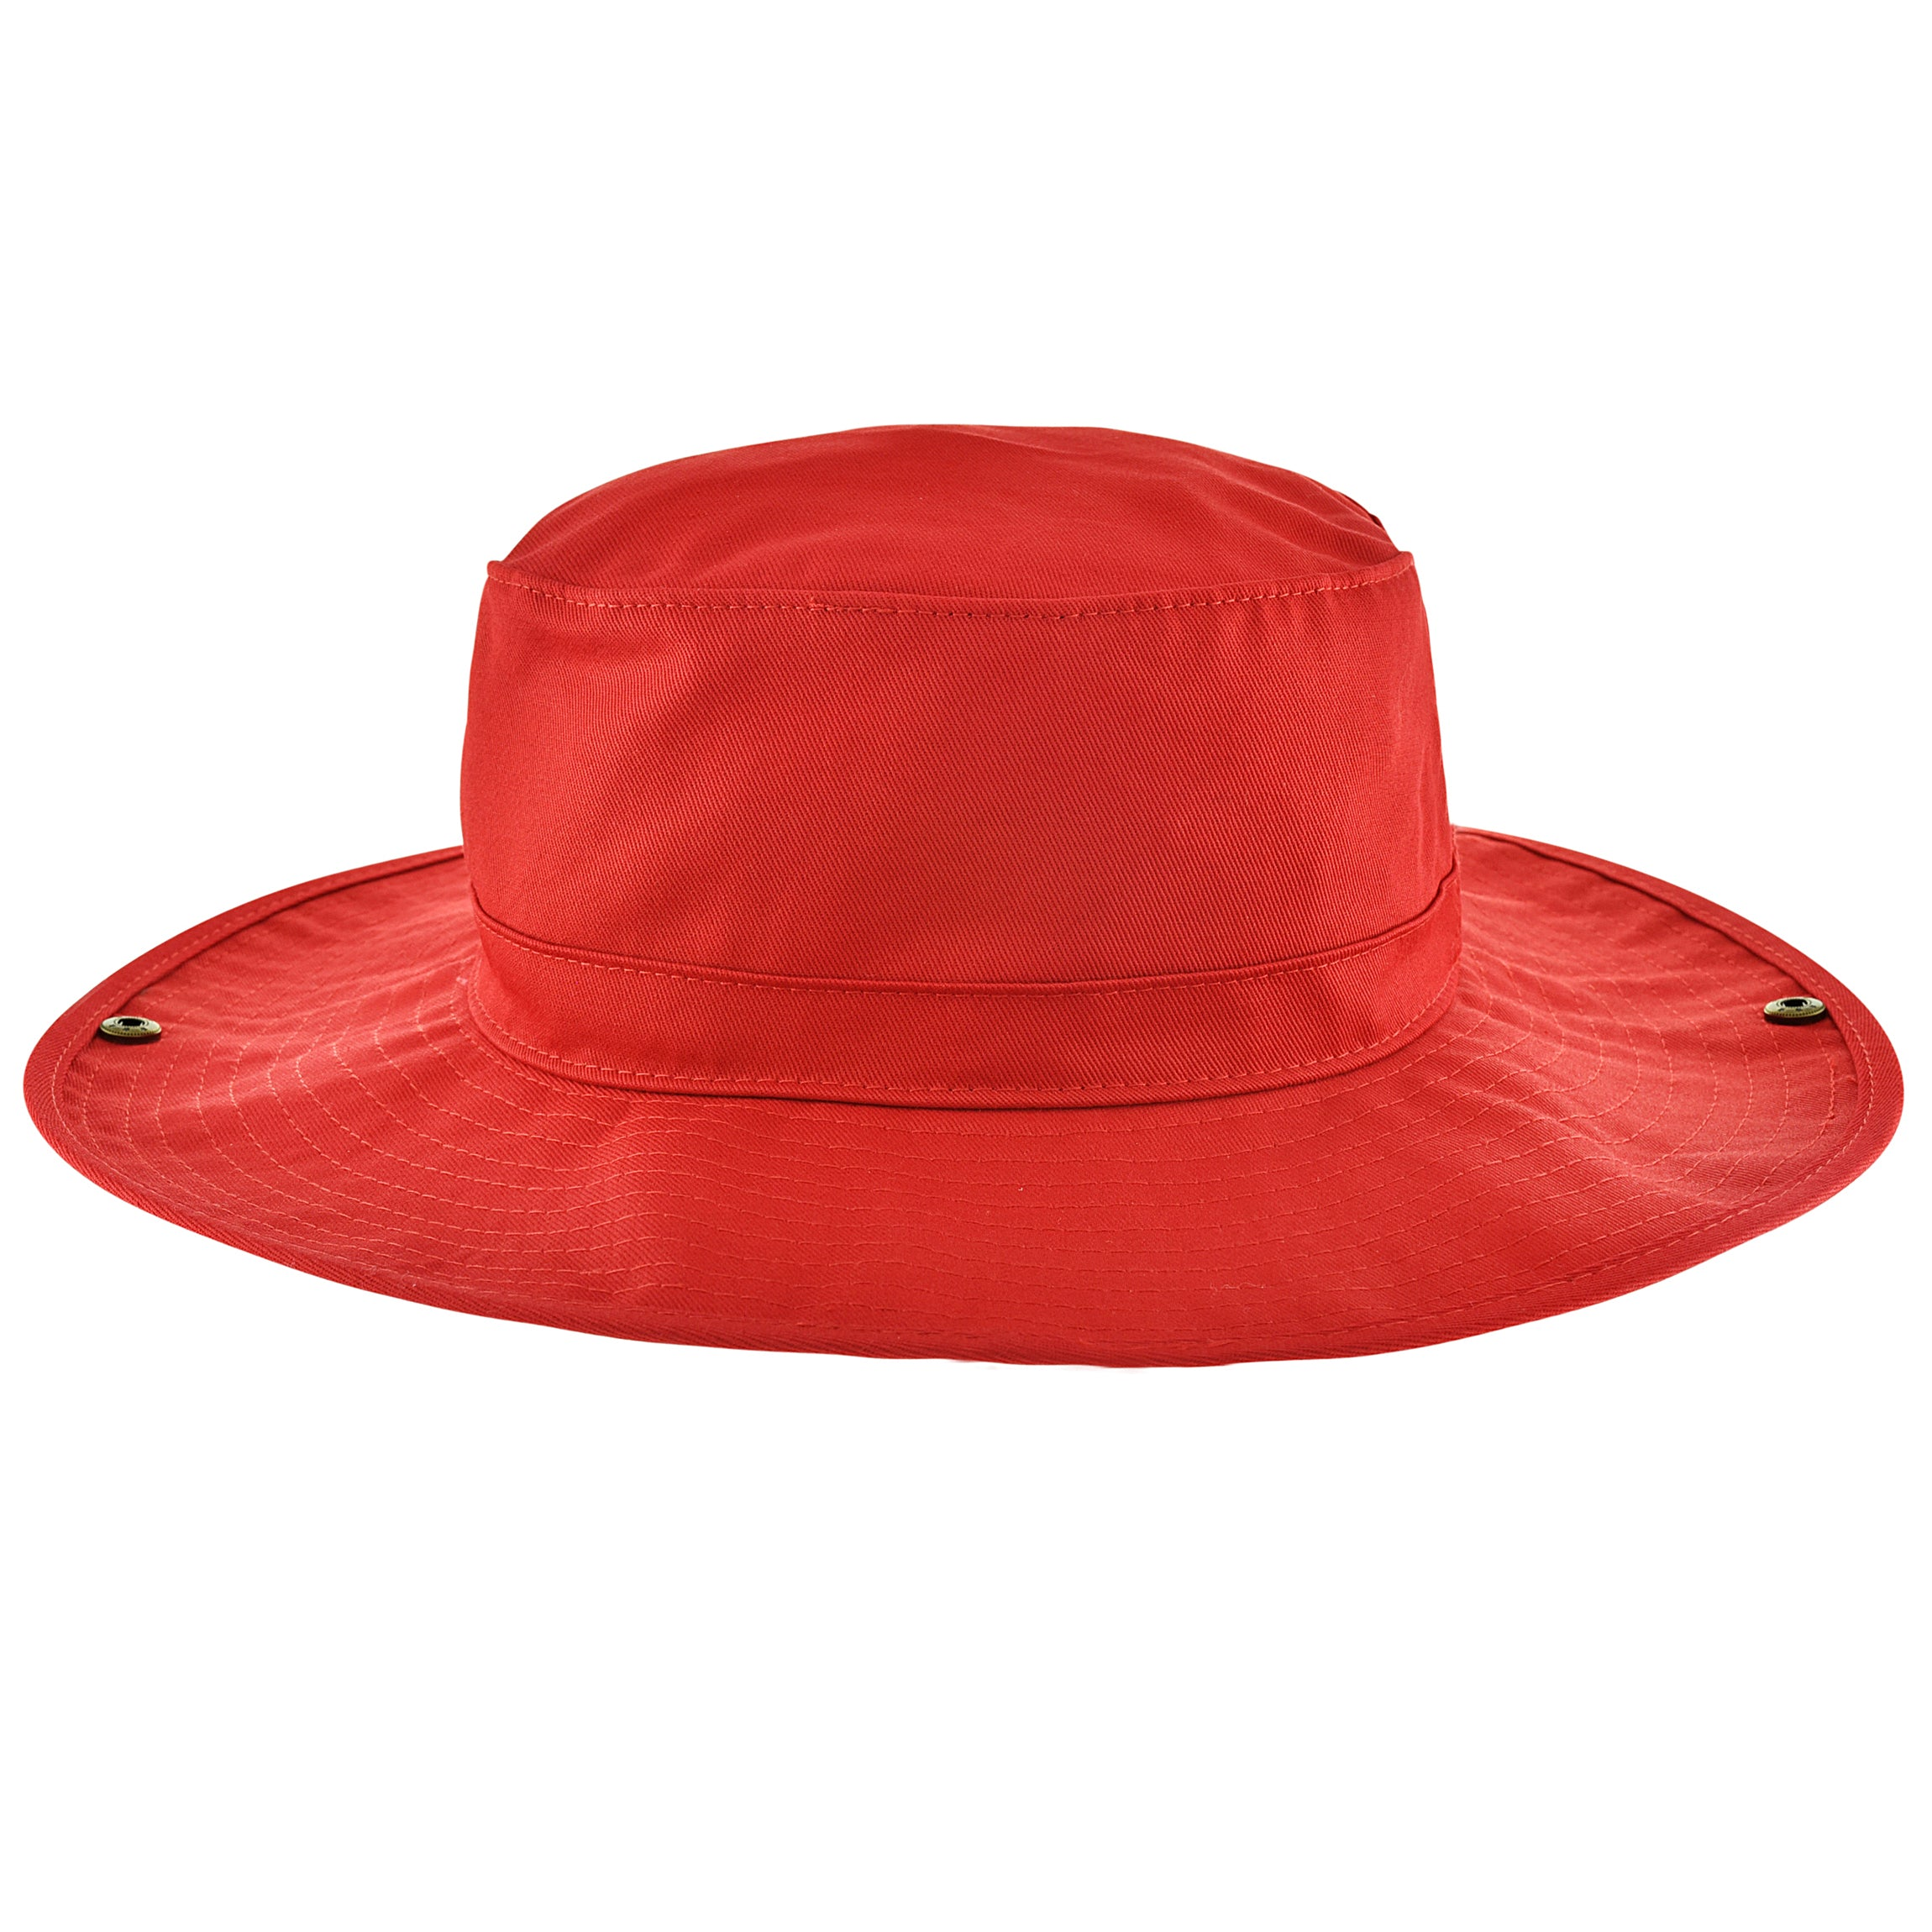 Lifeguard Safari Hat - BLARIX